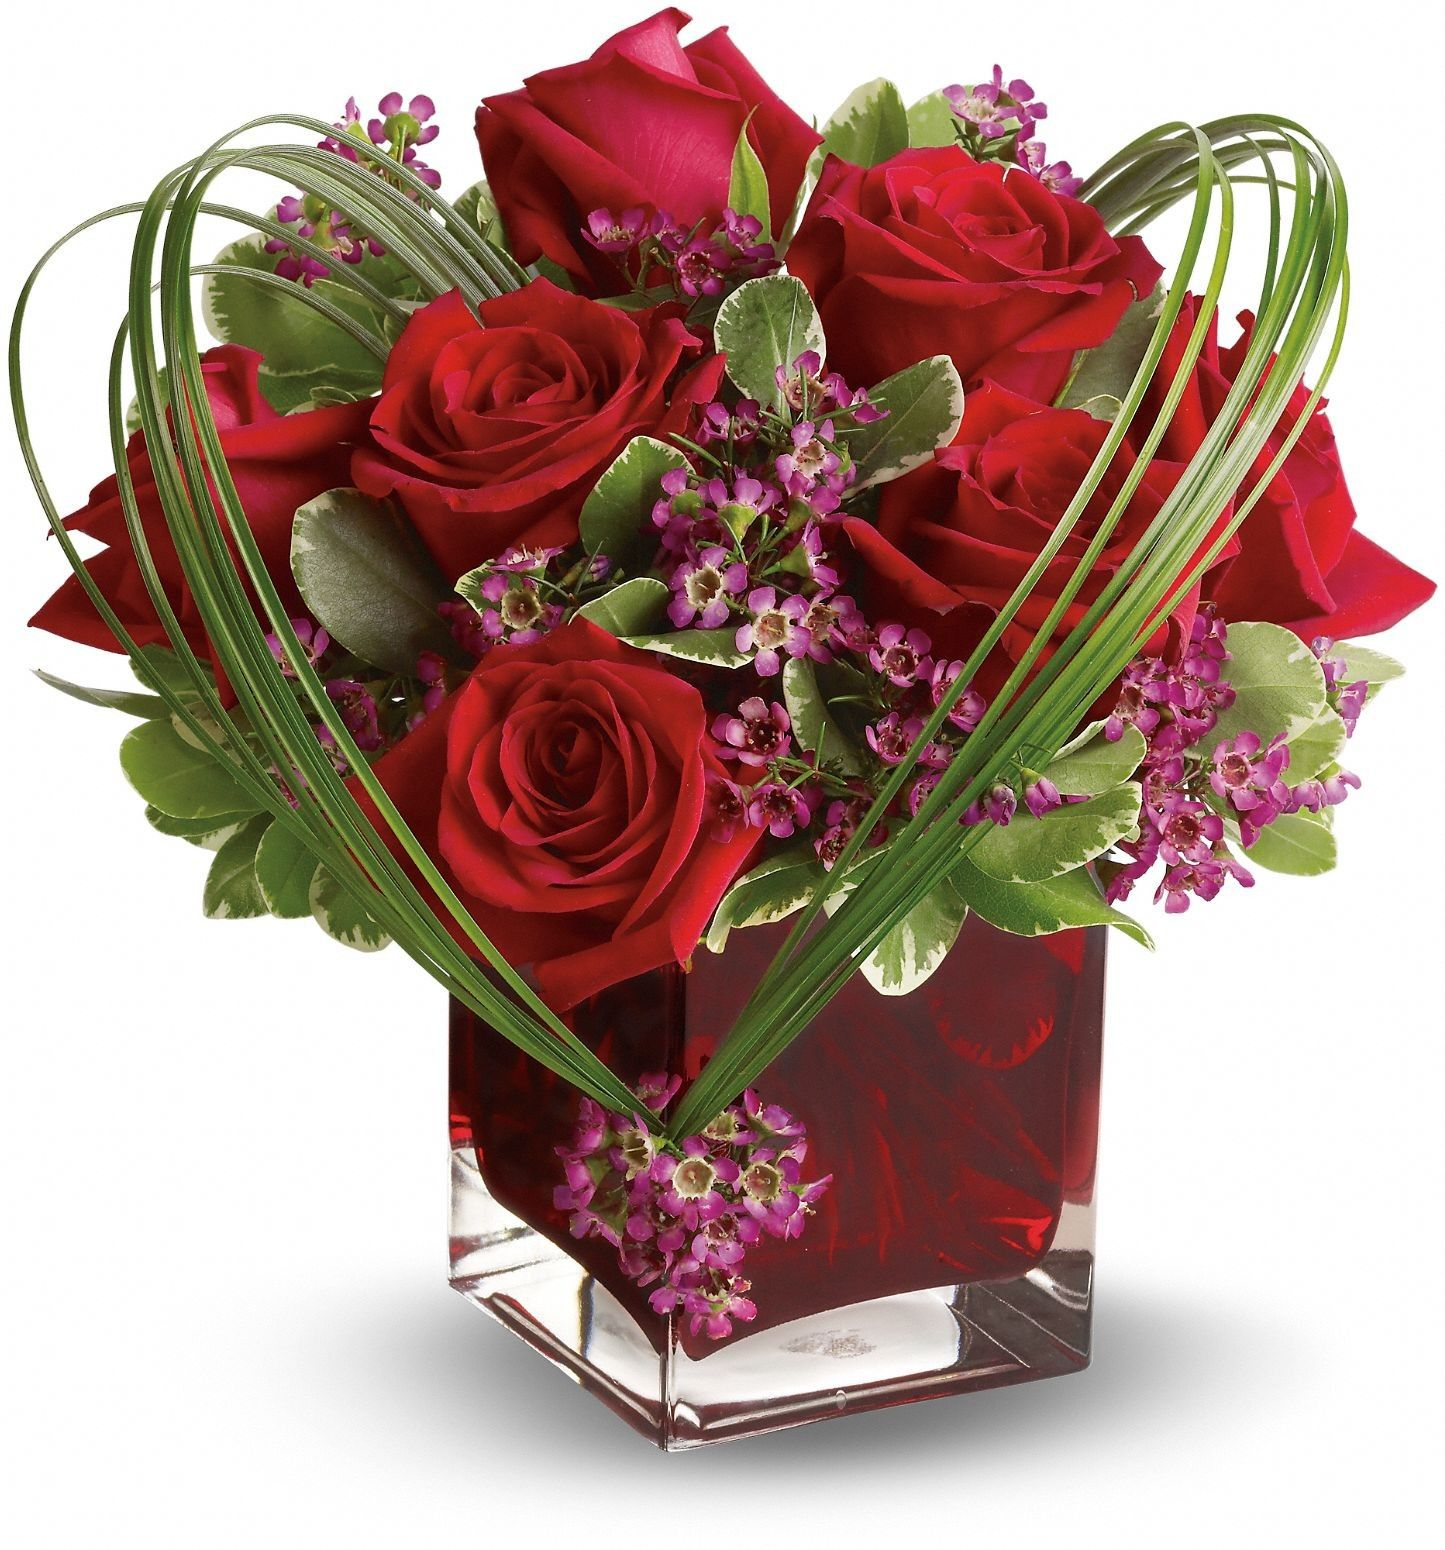 Red roses images with friendship quotes bouquet design flowers 3d for fresh and fast flower delivery throughout alliston new tecumseth on area izmirmasajfo